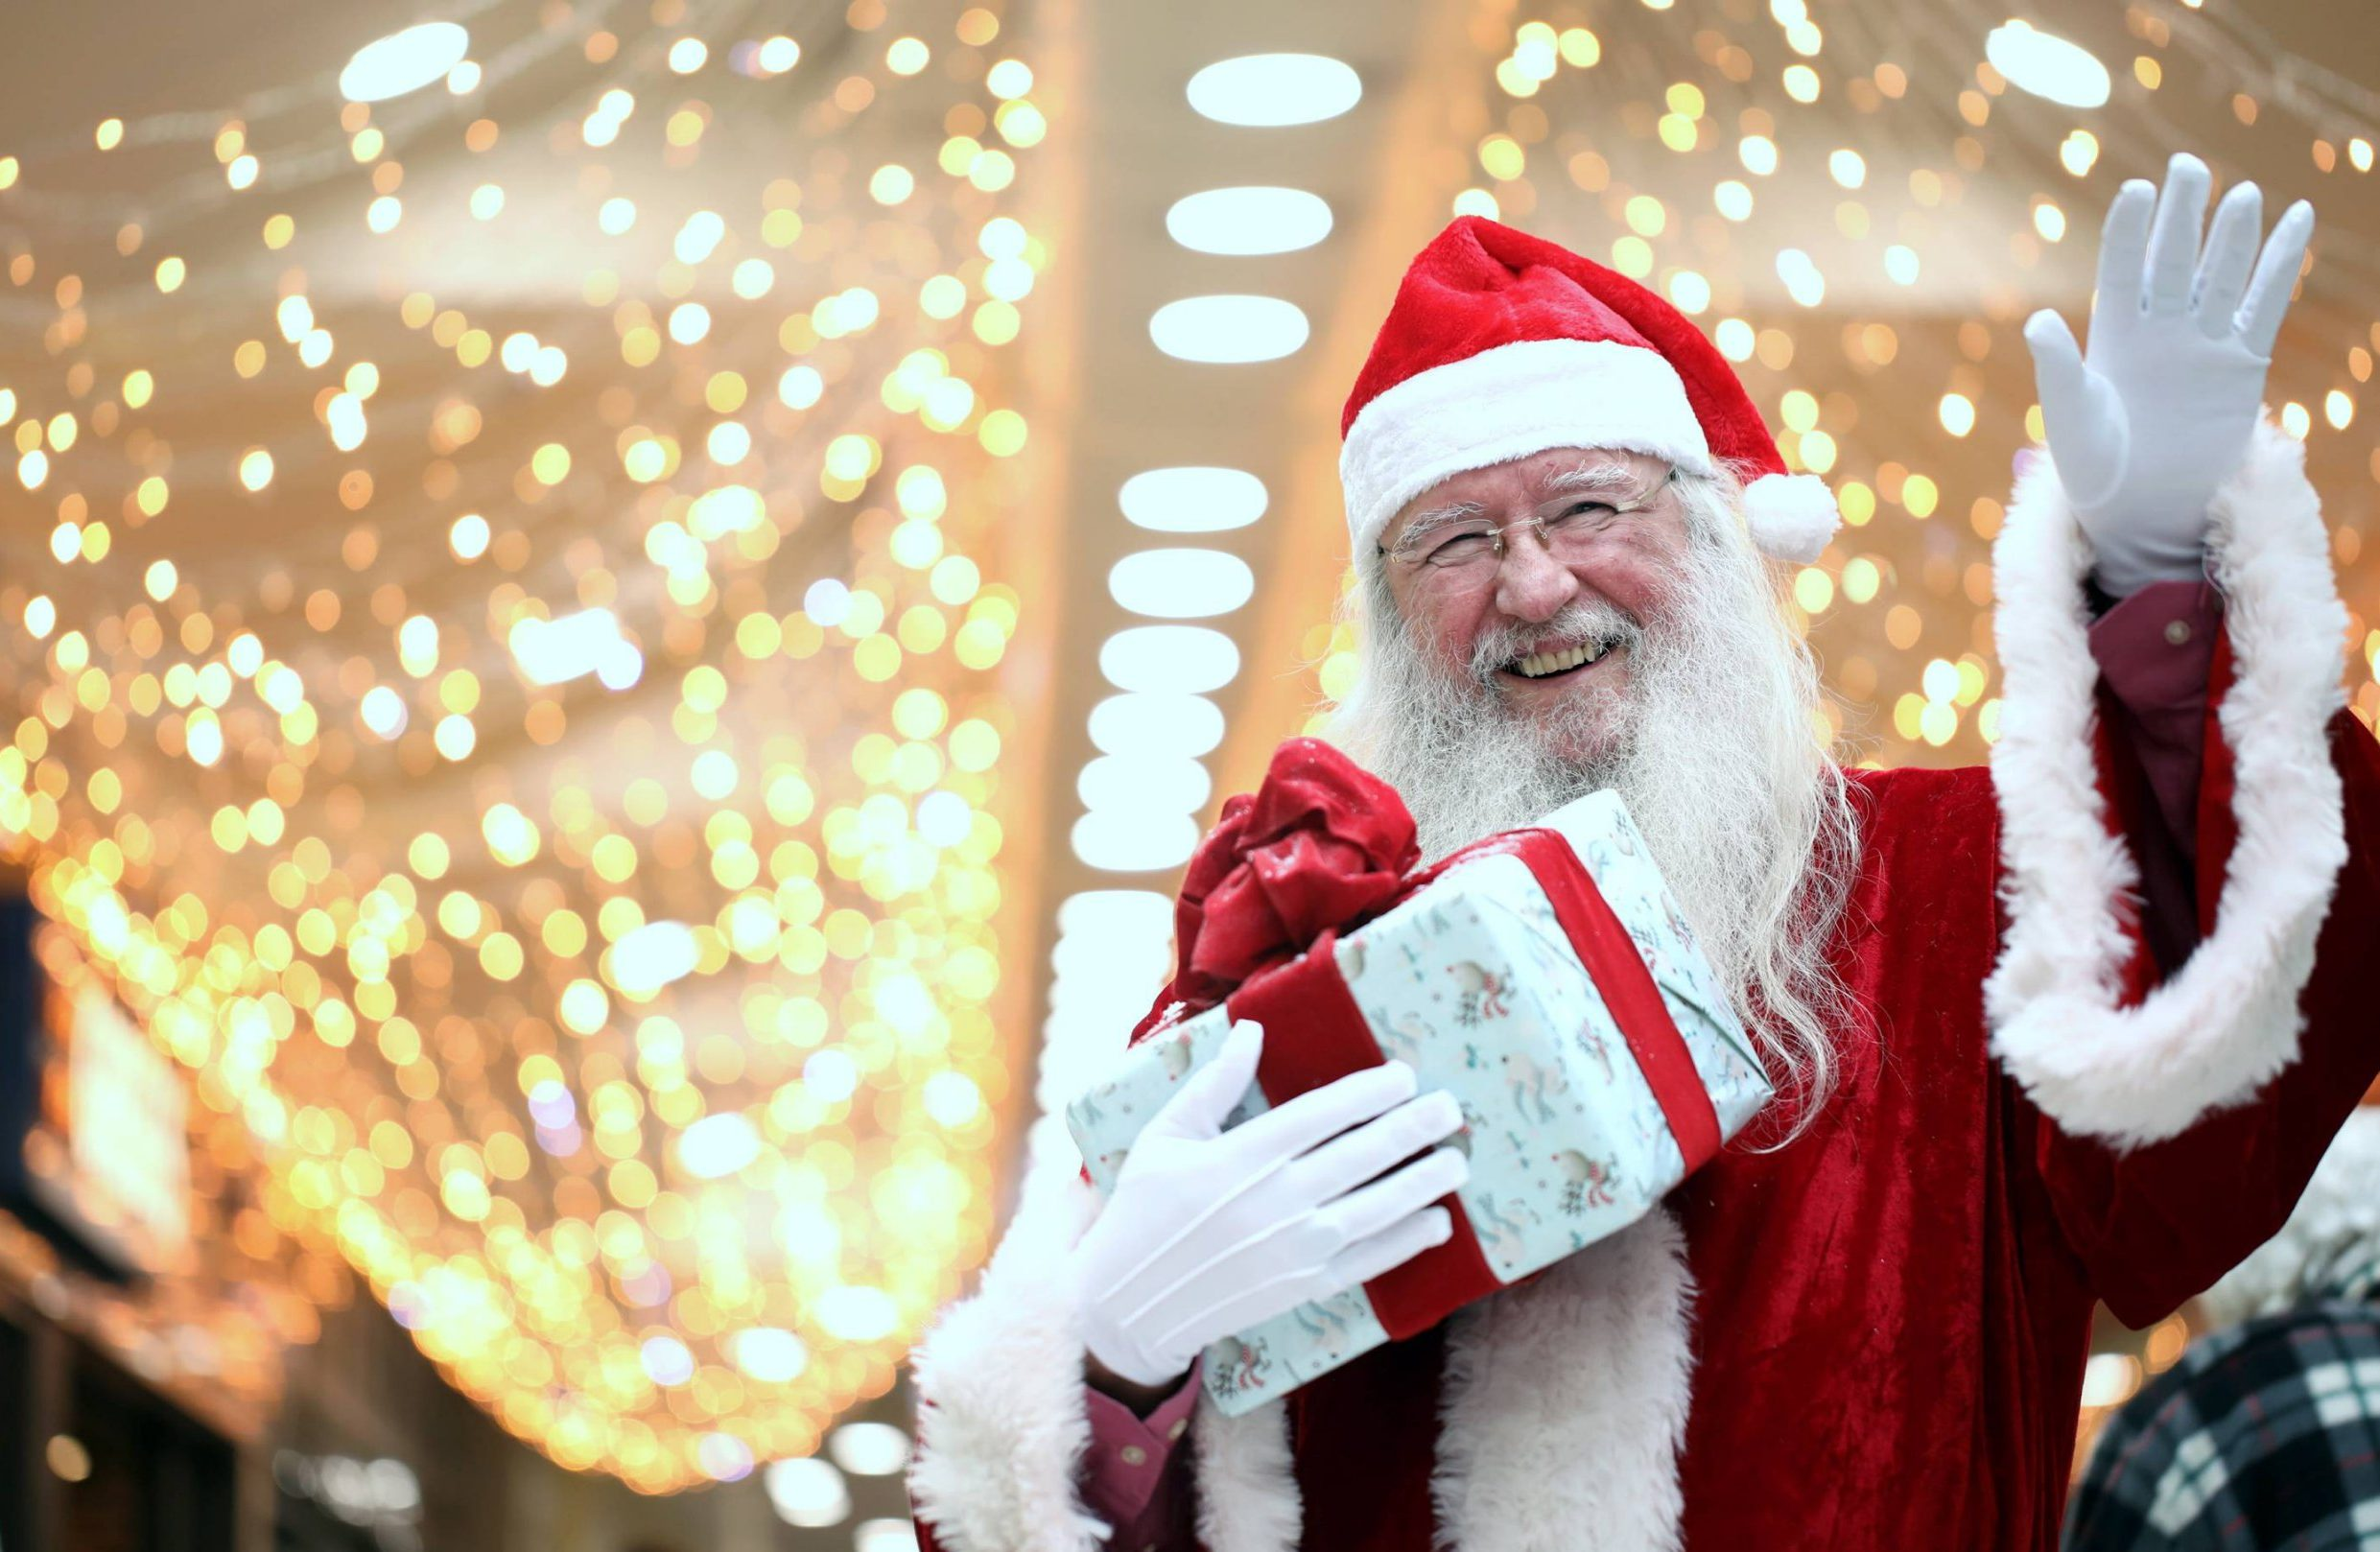 Dated: 12/12/2018 Santa Claus at the Castlegate Shopping Centre in Stockton-on-Tees, where parents were left horrified when an angry mum spat in the face of an elf at the centre's Christmas grotto. See story North News